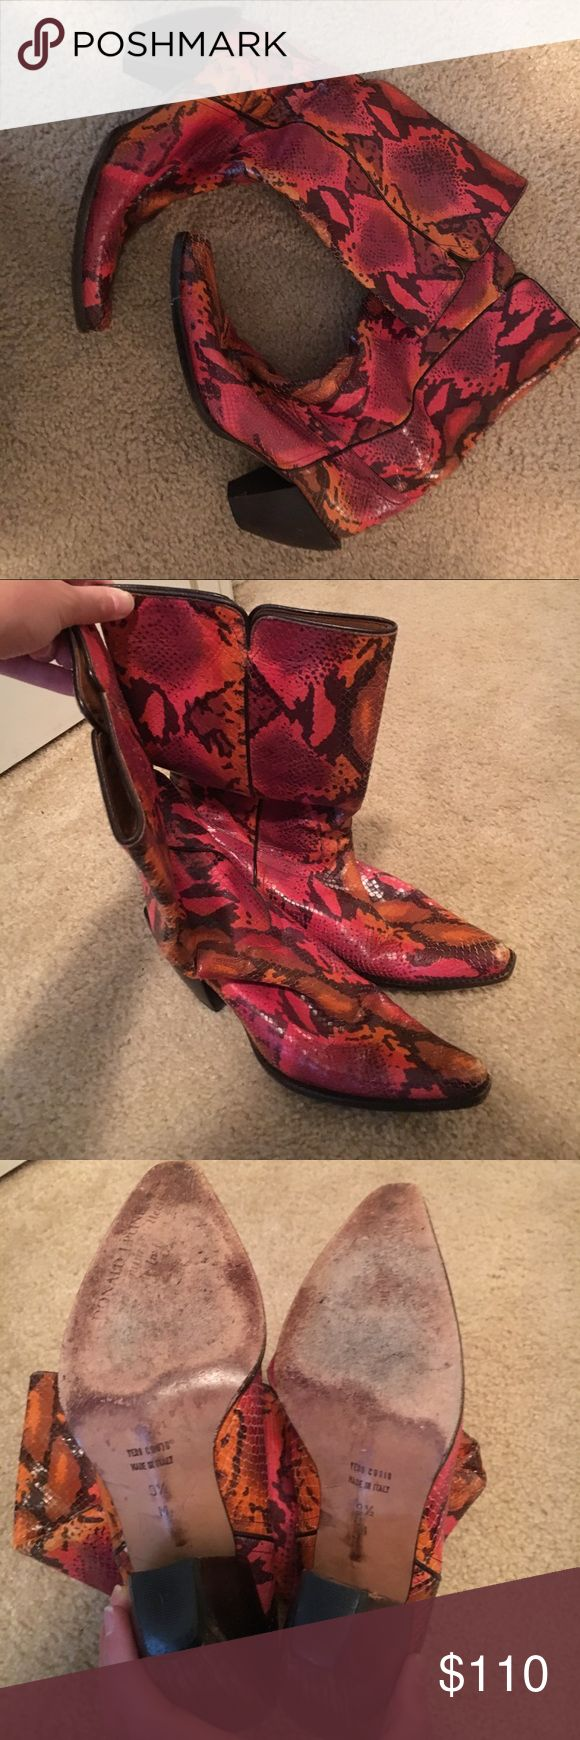 Donald J. Pliner pink snakeskin cowboy boots These shoes are so cute and fun!! Unfortunately, they are too small for my feet. They are a size 9.5, but I would say they run a little bit on the smaller side (I can usually fit into a 9.5 or 10). Donald J. Pliner Shoes Heeled Boots